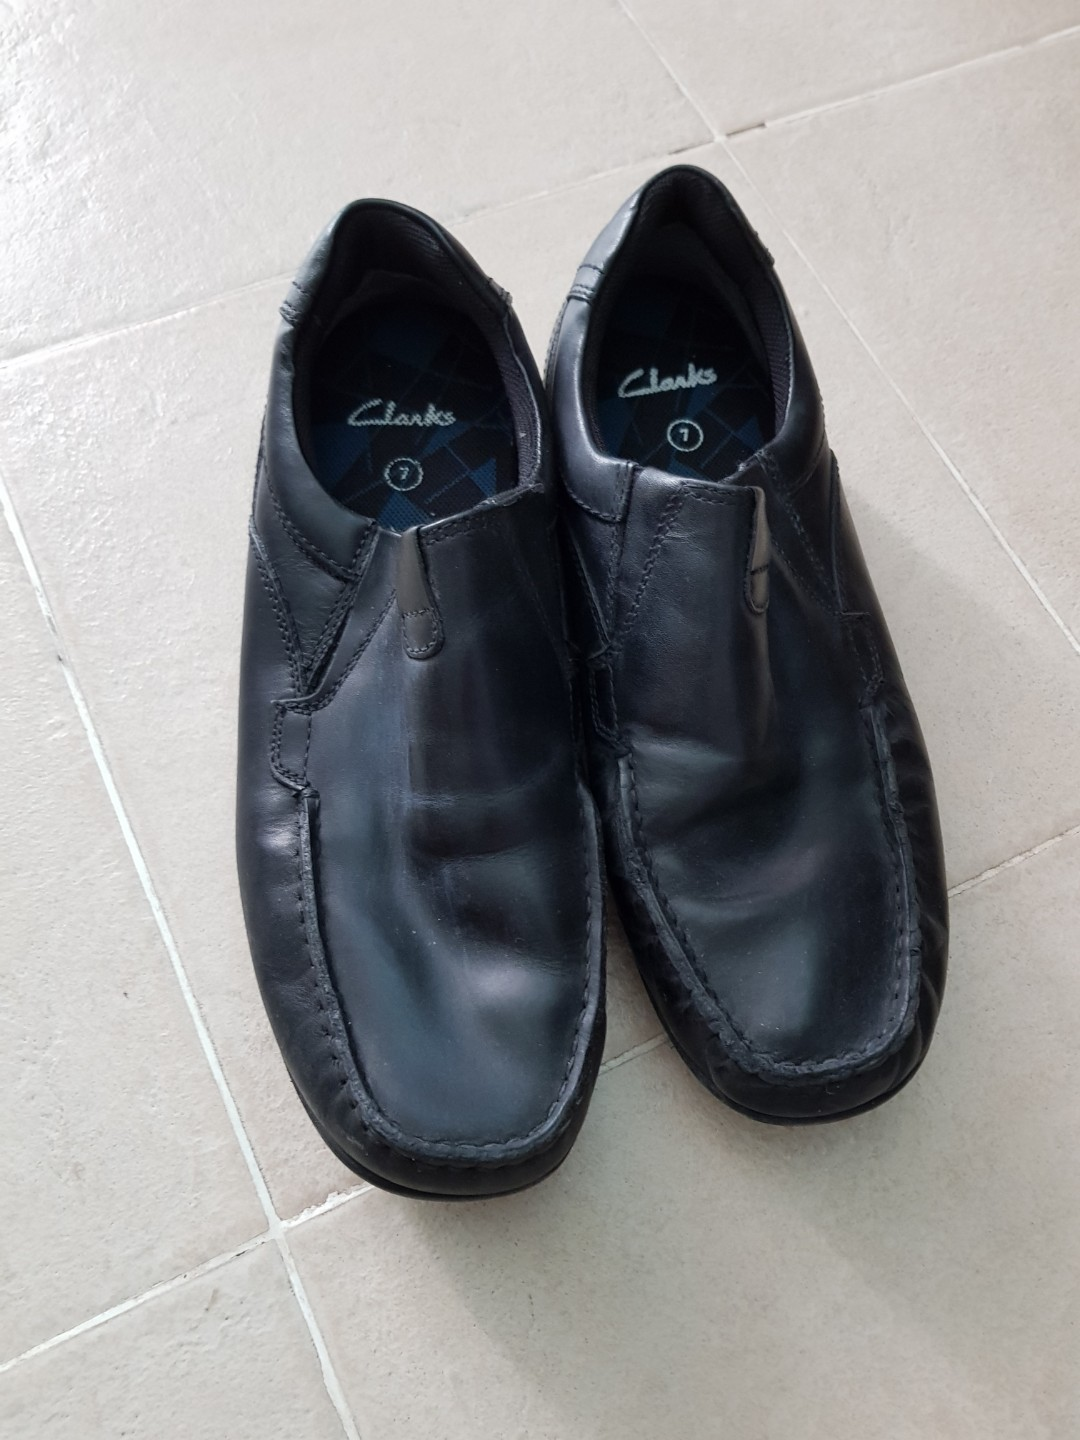 181118b43a8c CHILDREN Black leather Shoes CLARK SIZE 7 FOR SALE